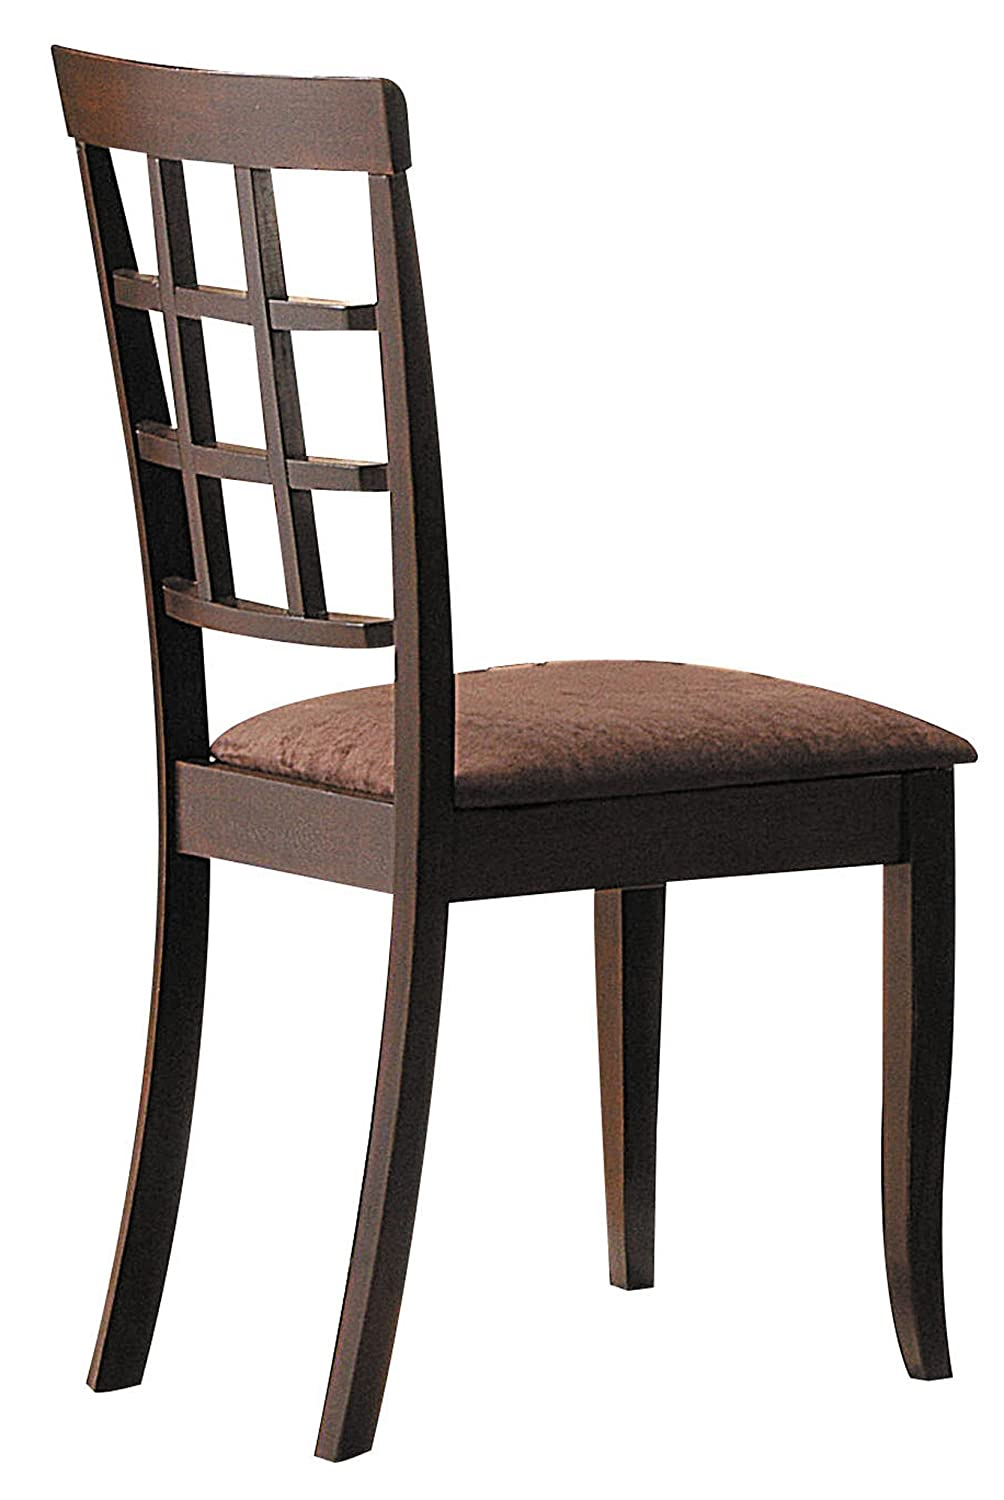 ACME 06851 Set of 2 Cardiff Side Chair Espresso Finish